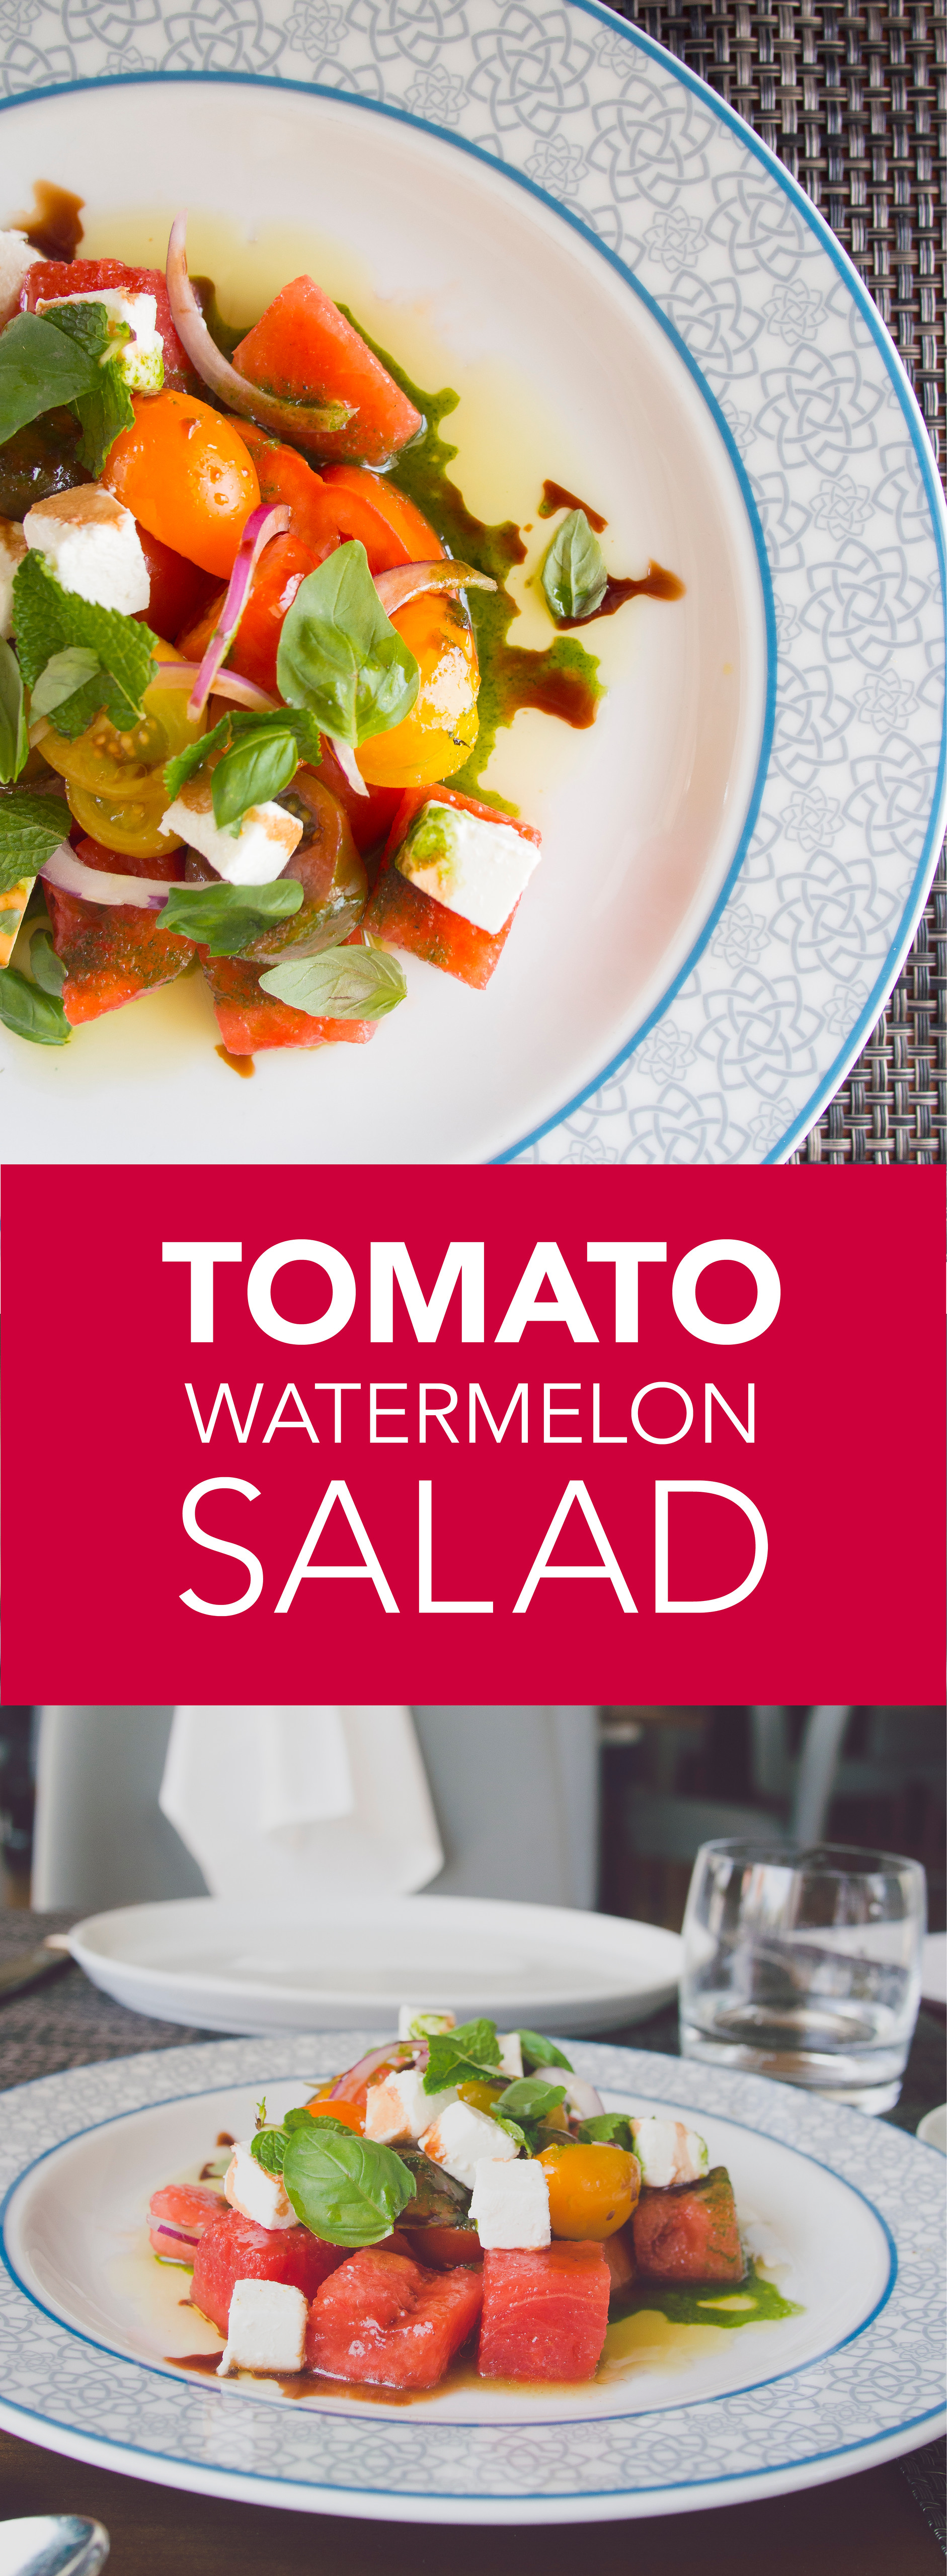 This heirloom tomato and watermelon salad is the perfect taste of summer and so easy to make.